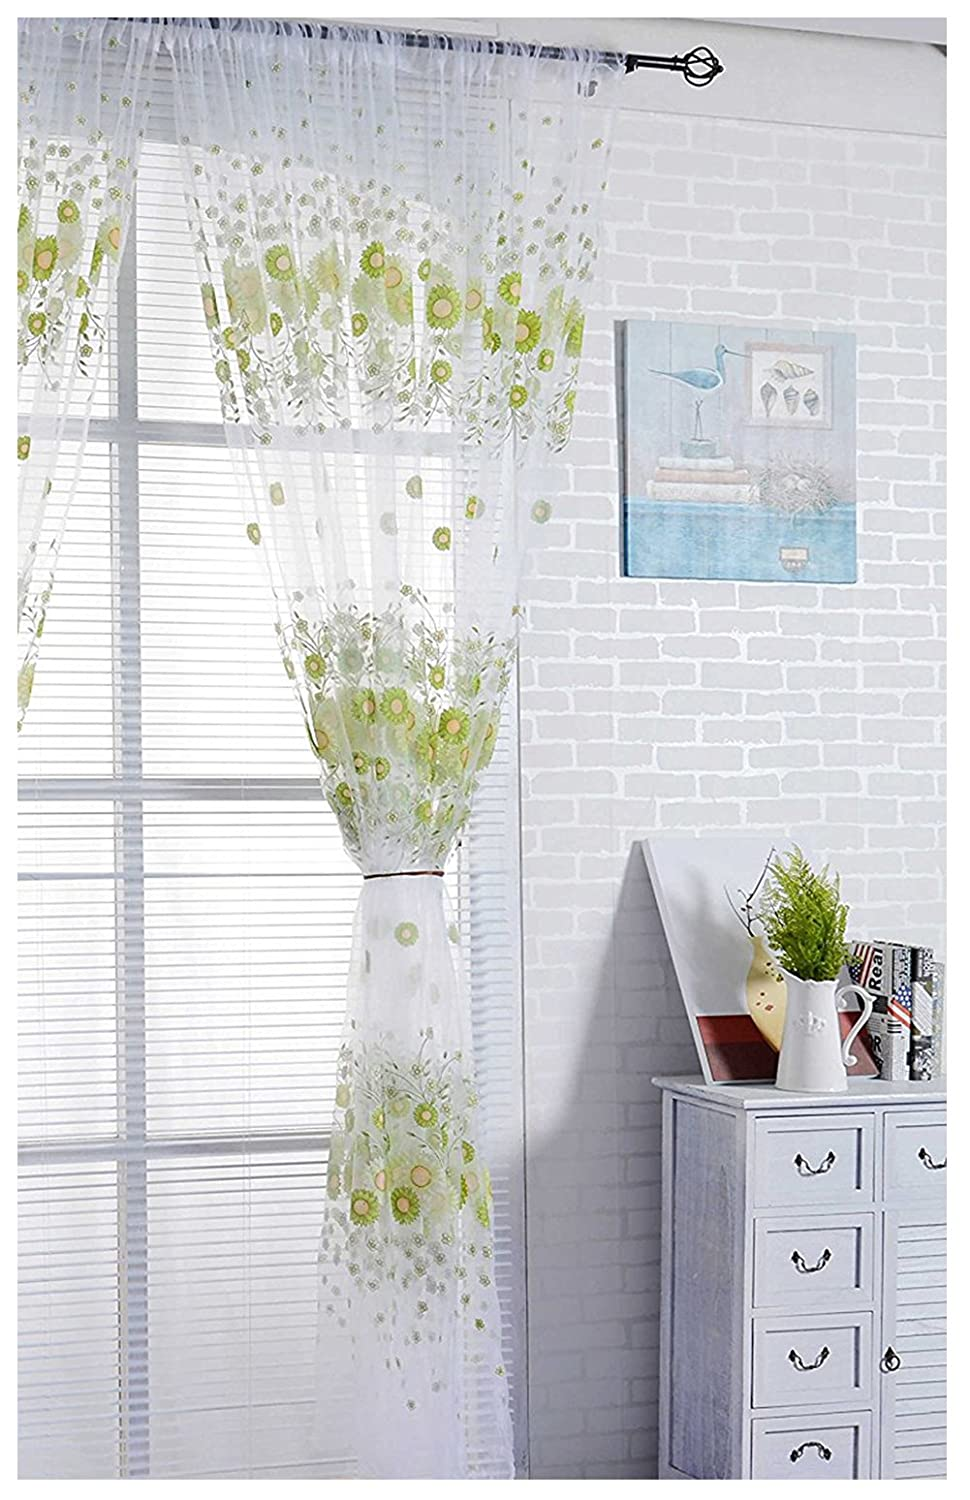 XARAZA Elegant Floral Embroidered Sheer Window Curtains Panel Drape for Home Decor (Butterfly-Green)